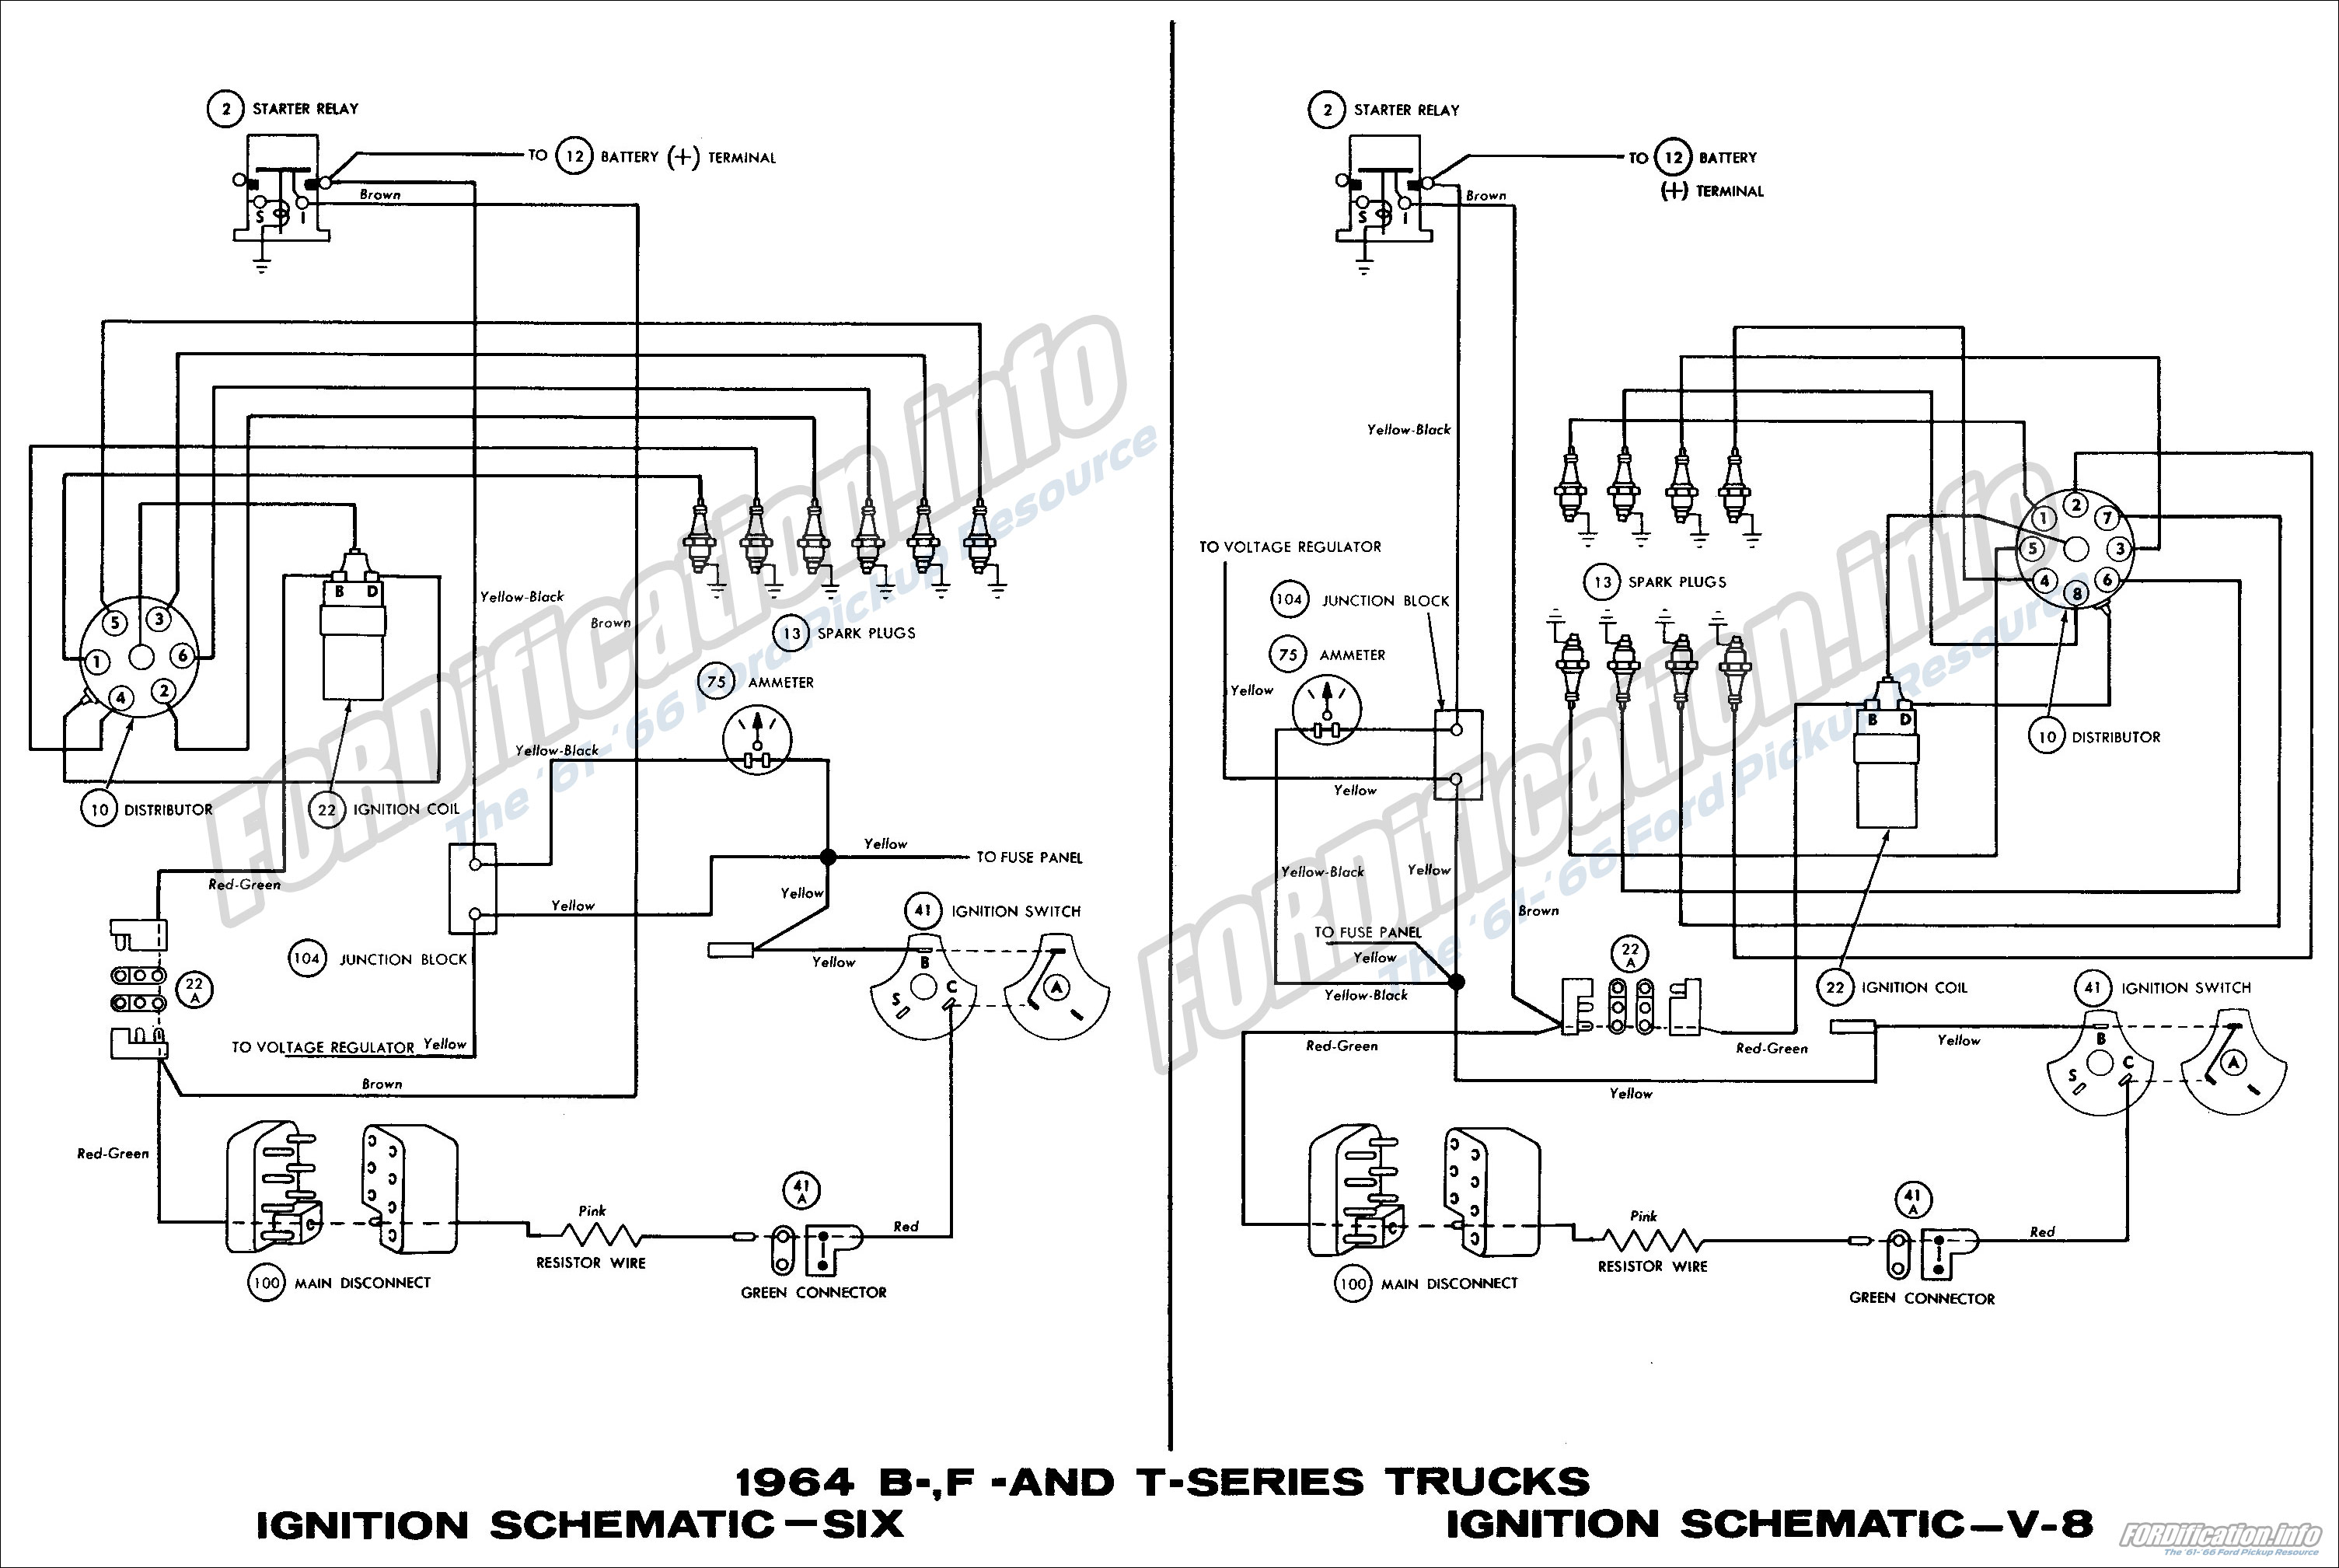 1964_03 wiring diagrams ford pickups the wiring diagram readingrat net Ford E 350 Wiring Diagrams at mifinder.co